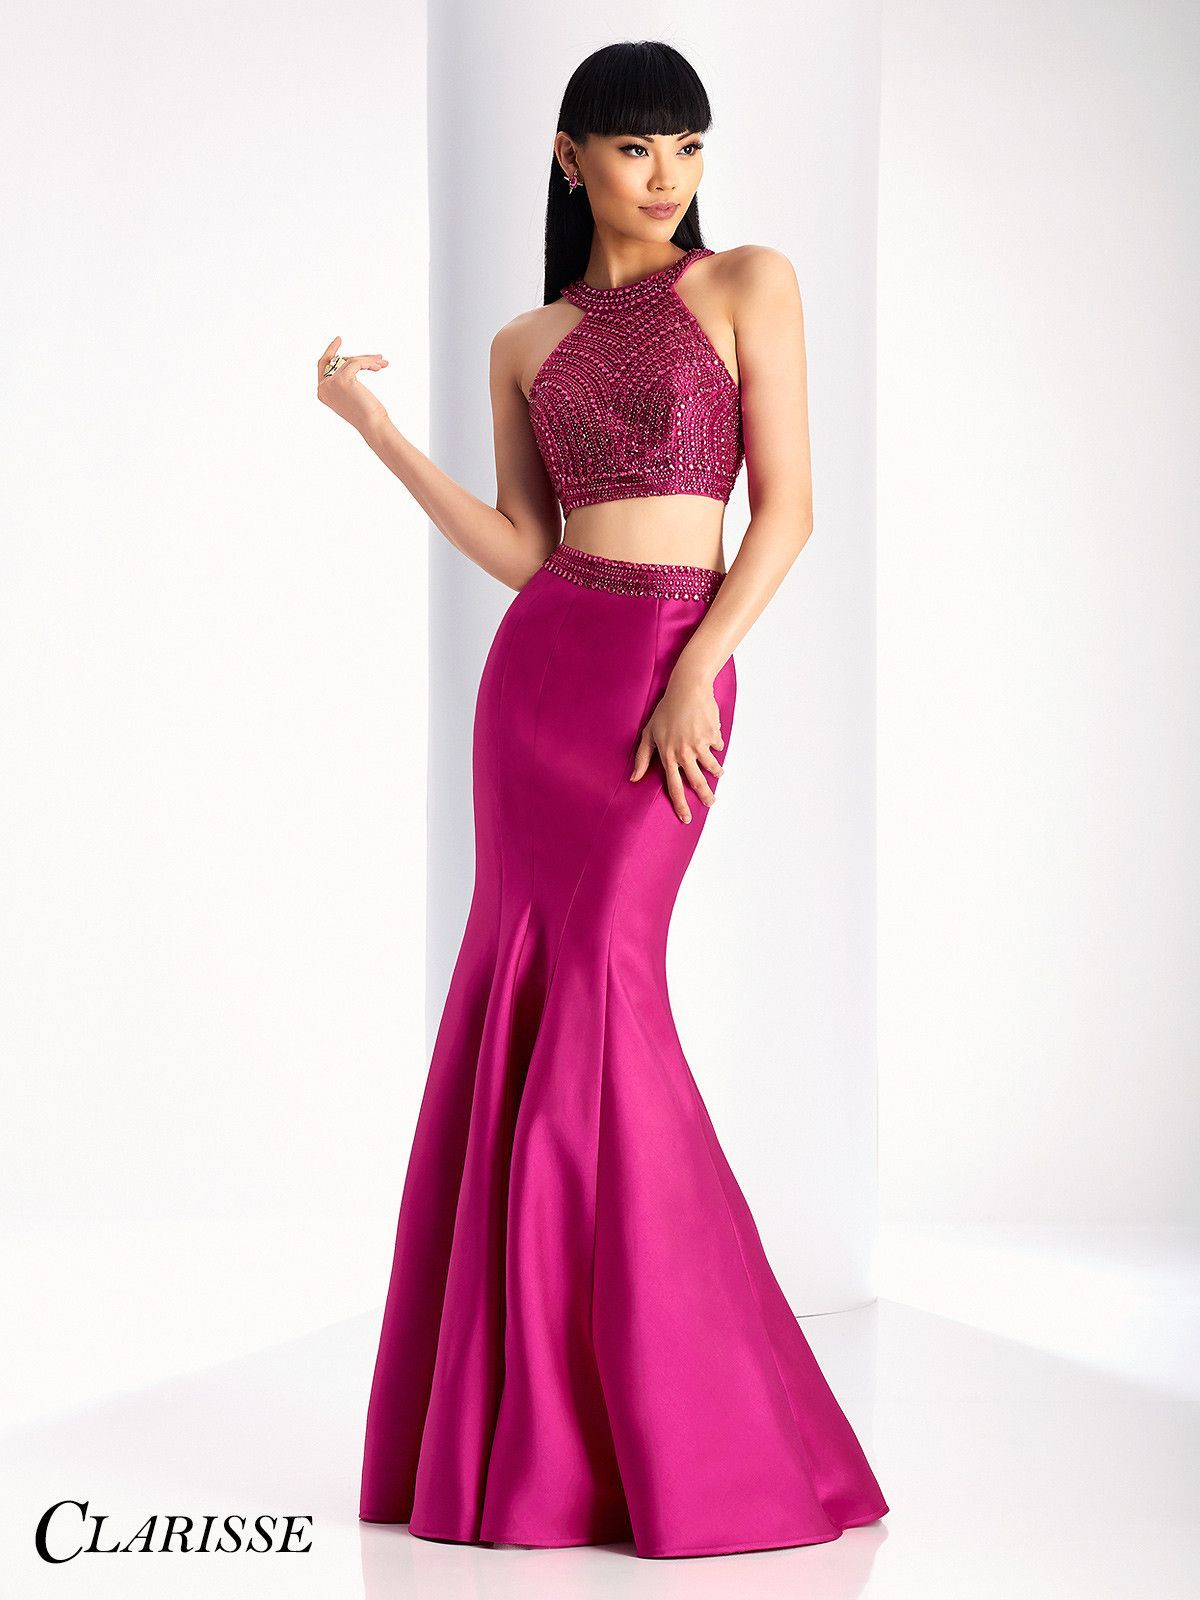 Clarisse Prom Dress 3190 | Favorite Places & Spaces | Pinterest